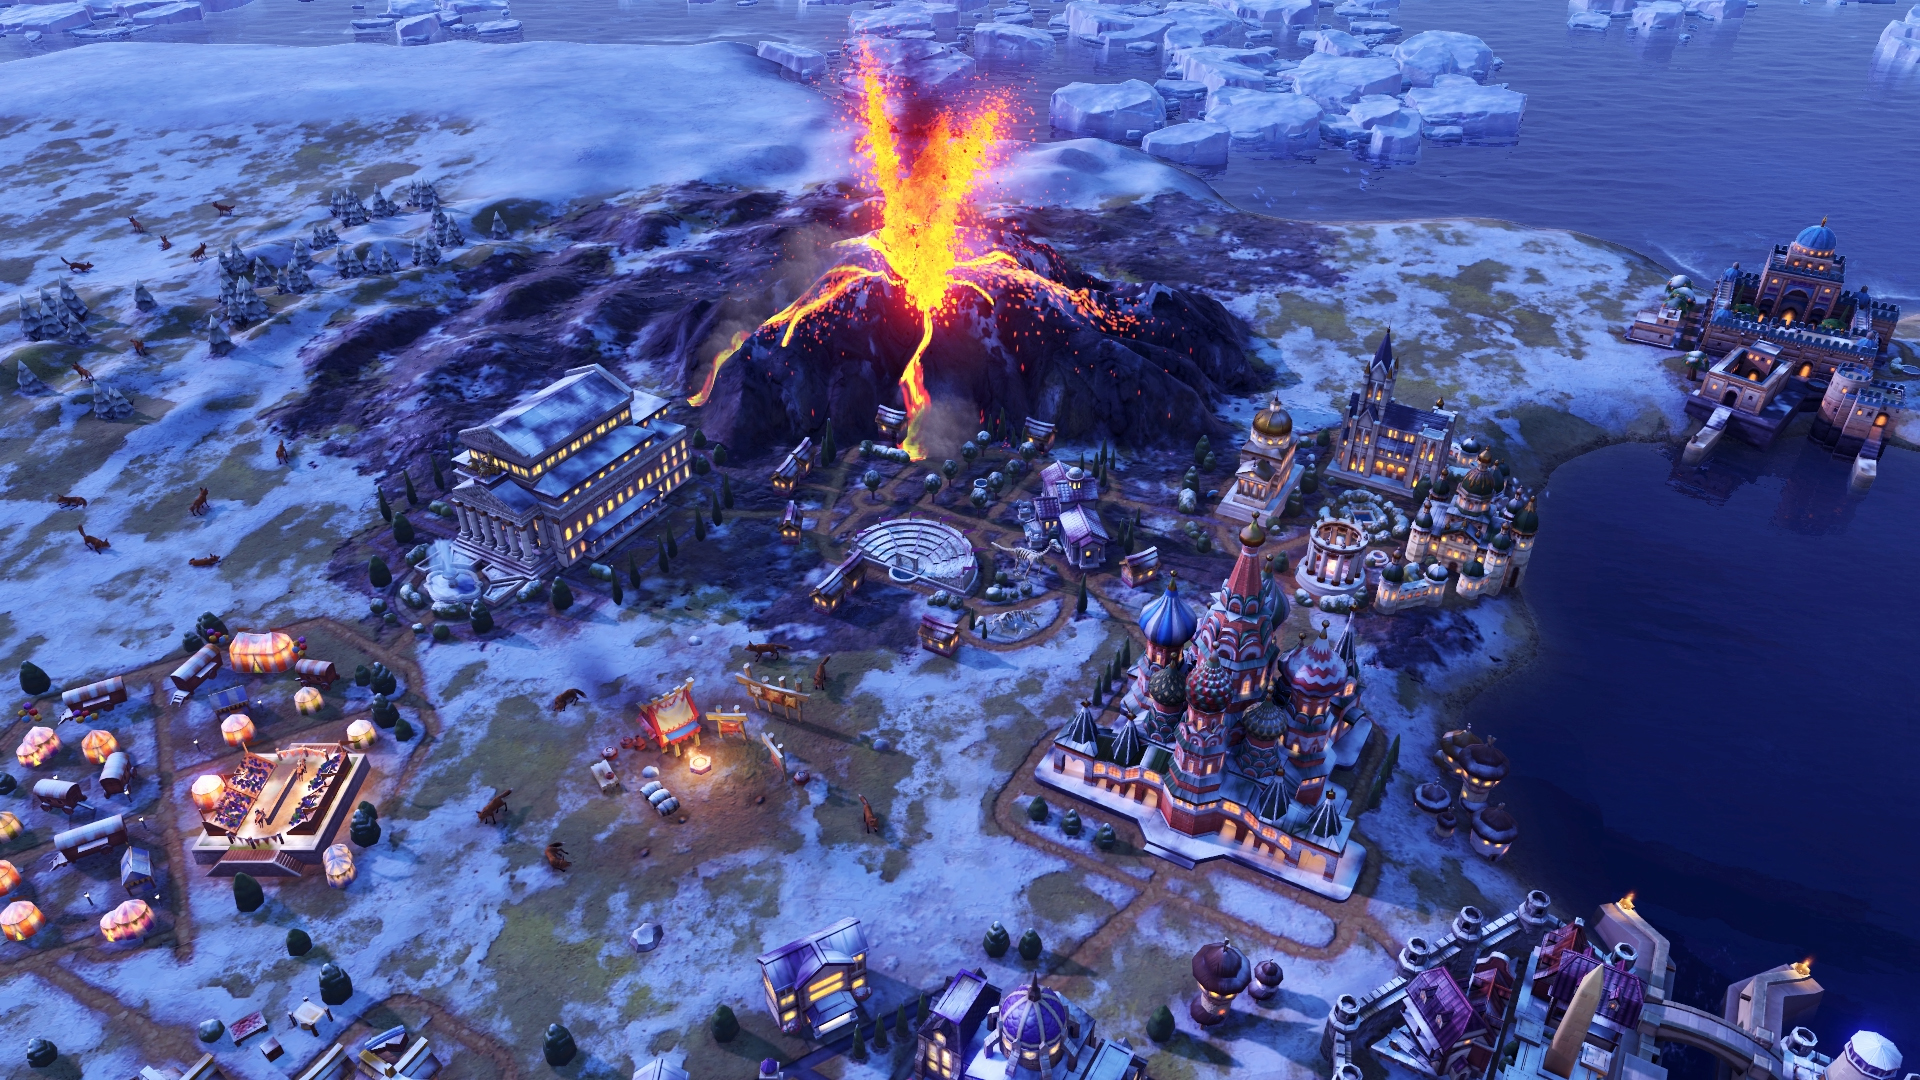 Let's take a look at Civilization 6: Gathering Storm's new climate and diplomacy systems